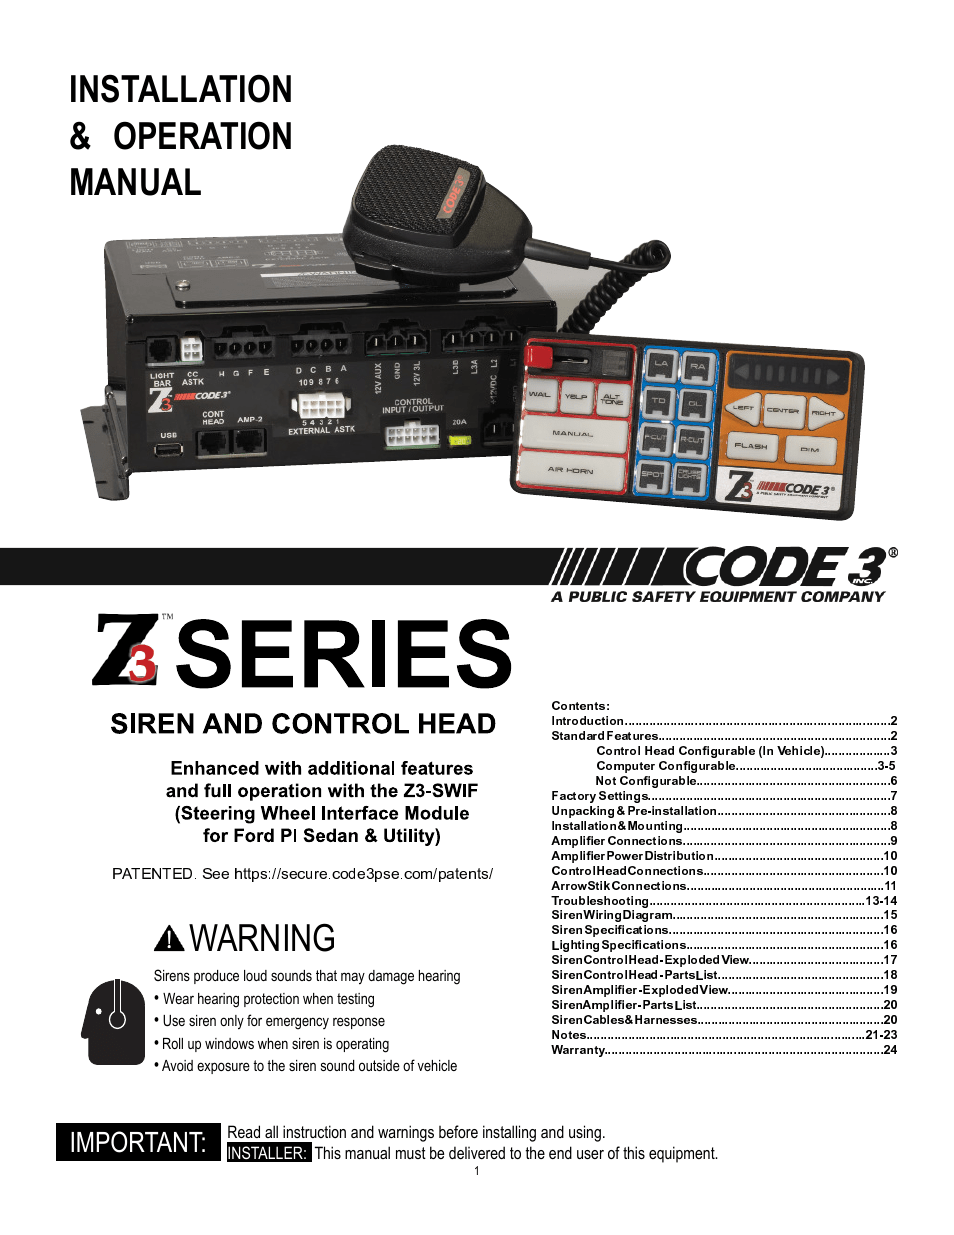 Code 3 Z3 Siren Installation & Operation Manual User